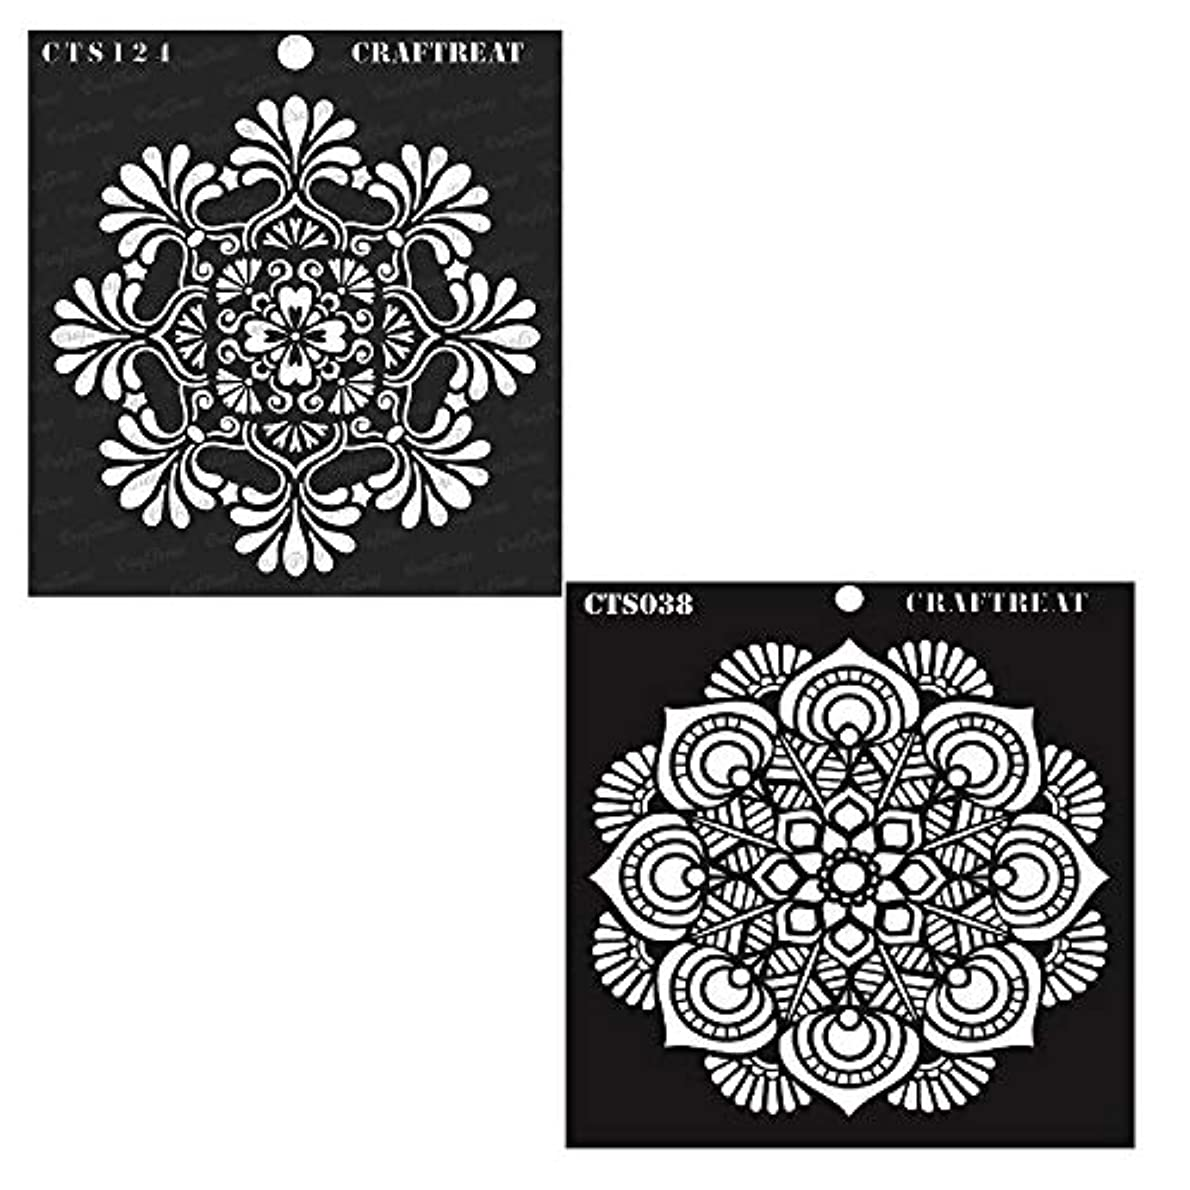 CrafTreat Stencil - Mandala 1&2 (2 pcs) | Reusable Painting Template for Home Decor, Crafting, DIY Albums, Scrapbook, Decoration and Printing on Paper, Floor, Wall, Tile, Fabric, Wood 6